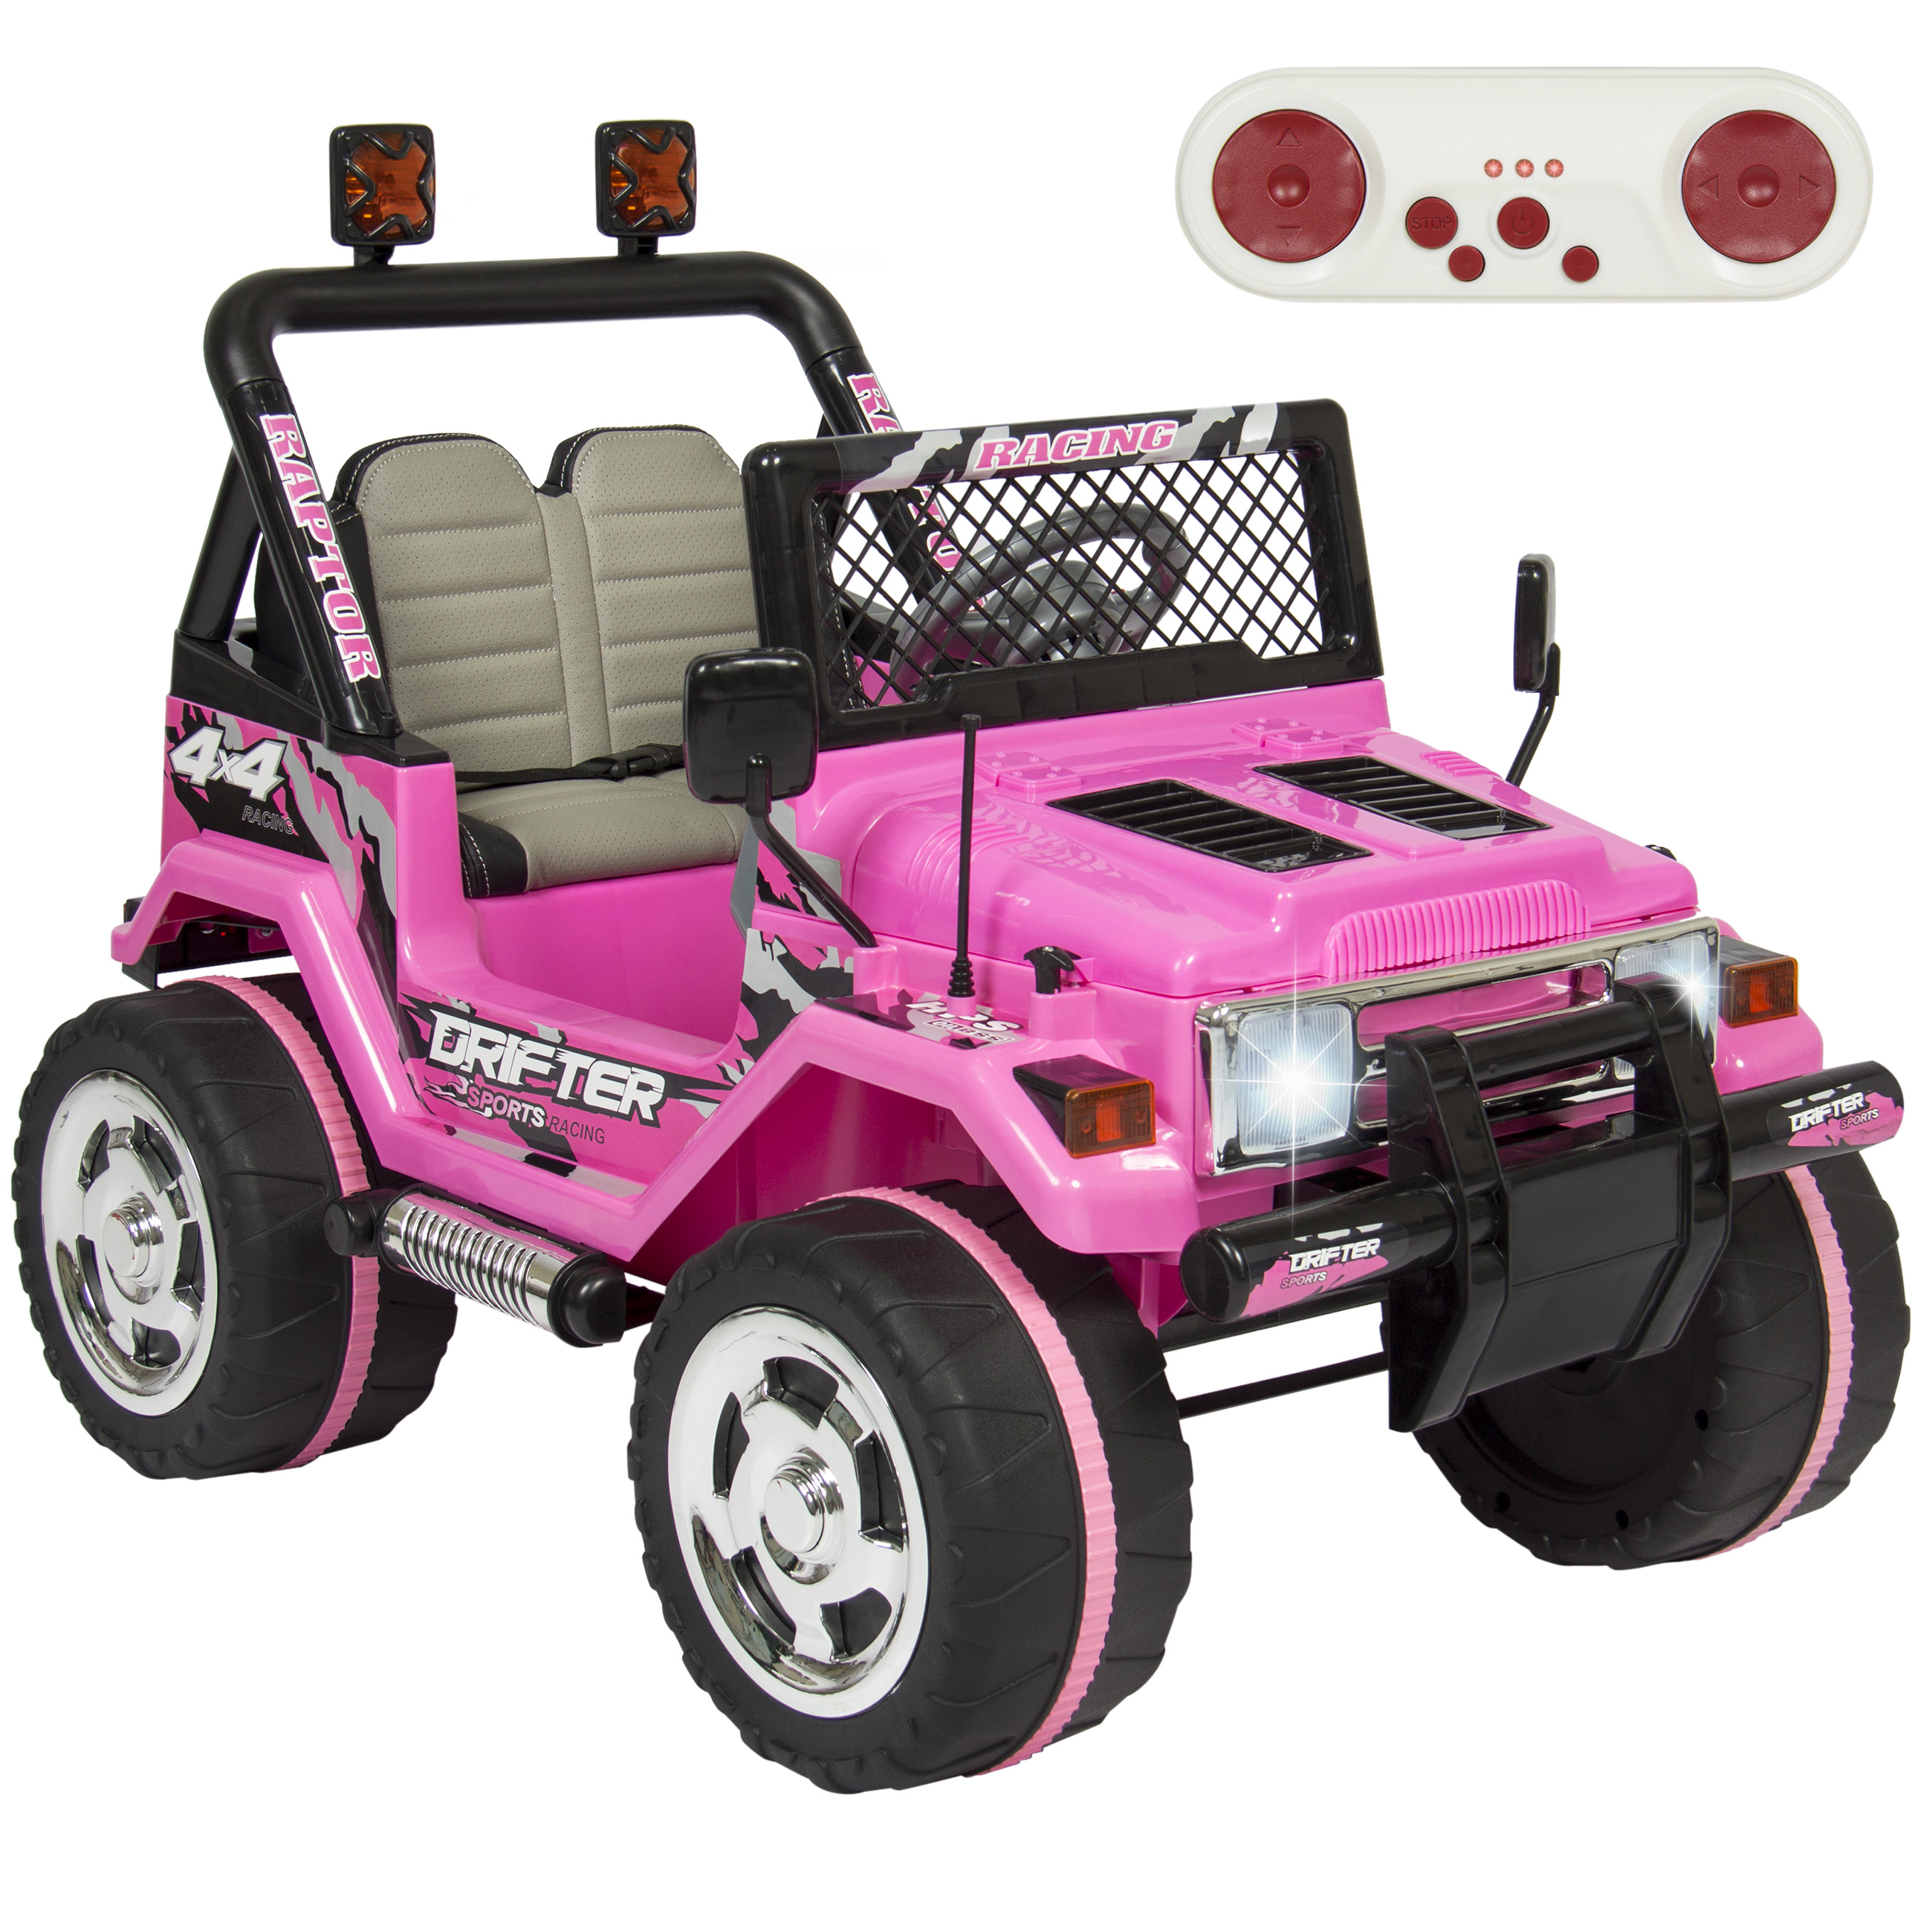 Best Choice Products 12V Ride On Car Truck w/ Remote Control, Leather Seat, Lights, 2 Speeds - Pink